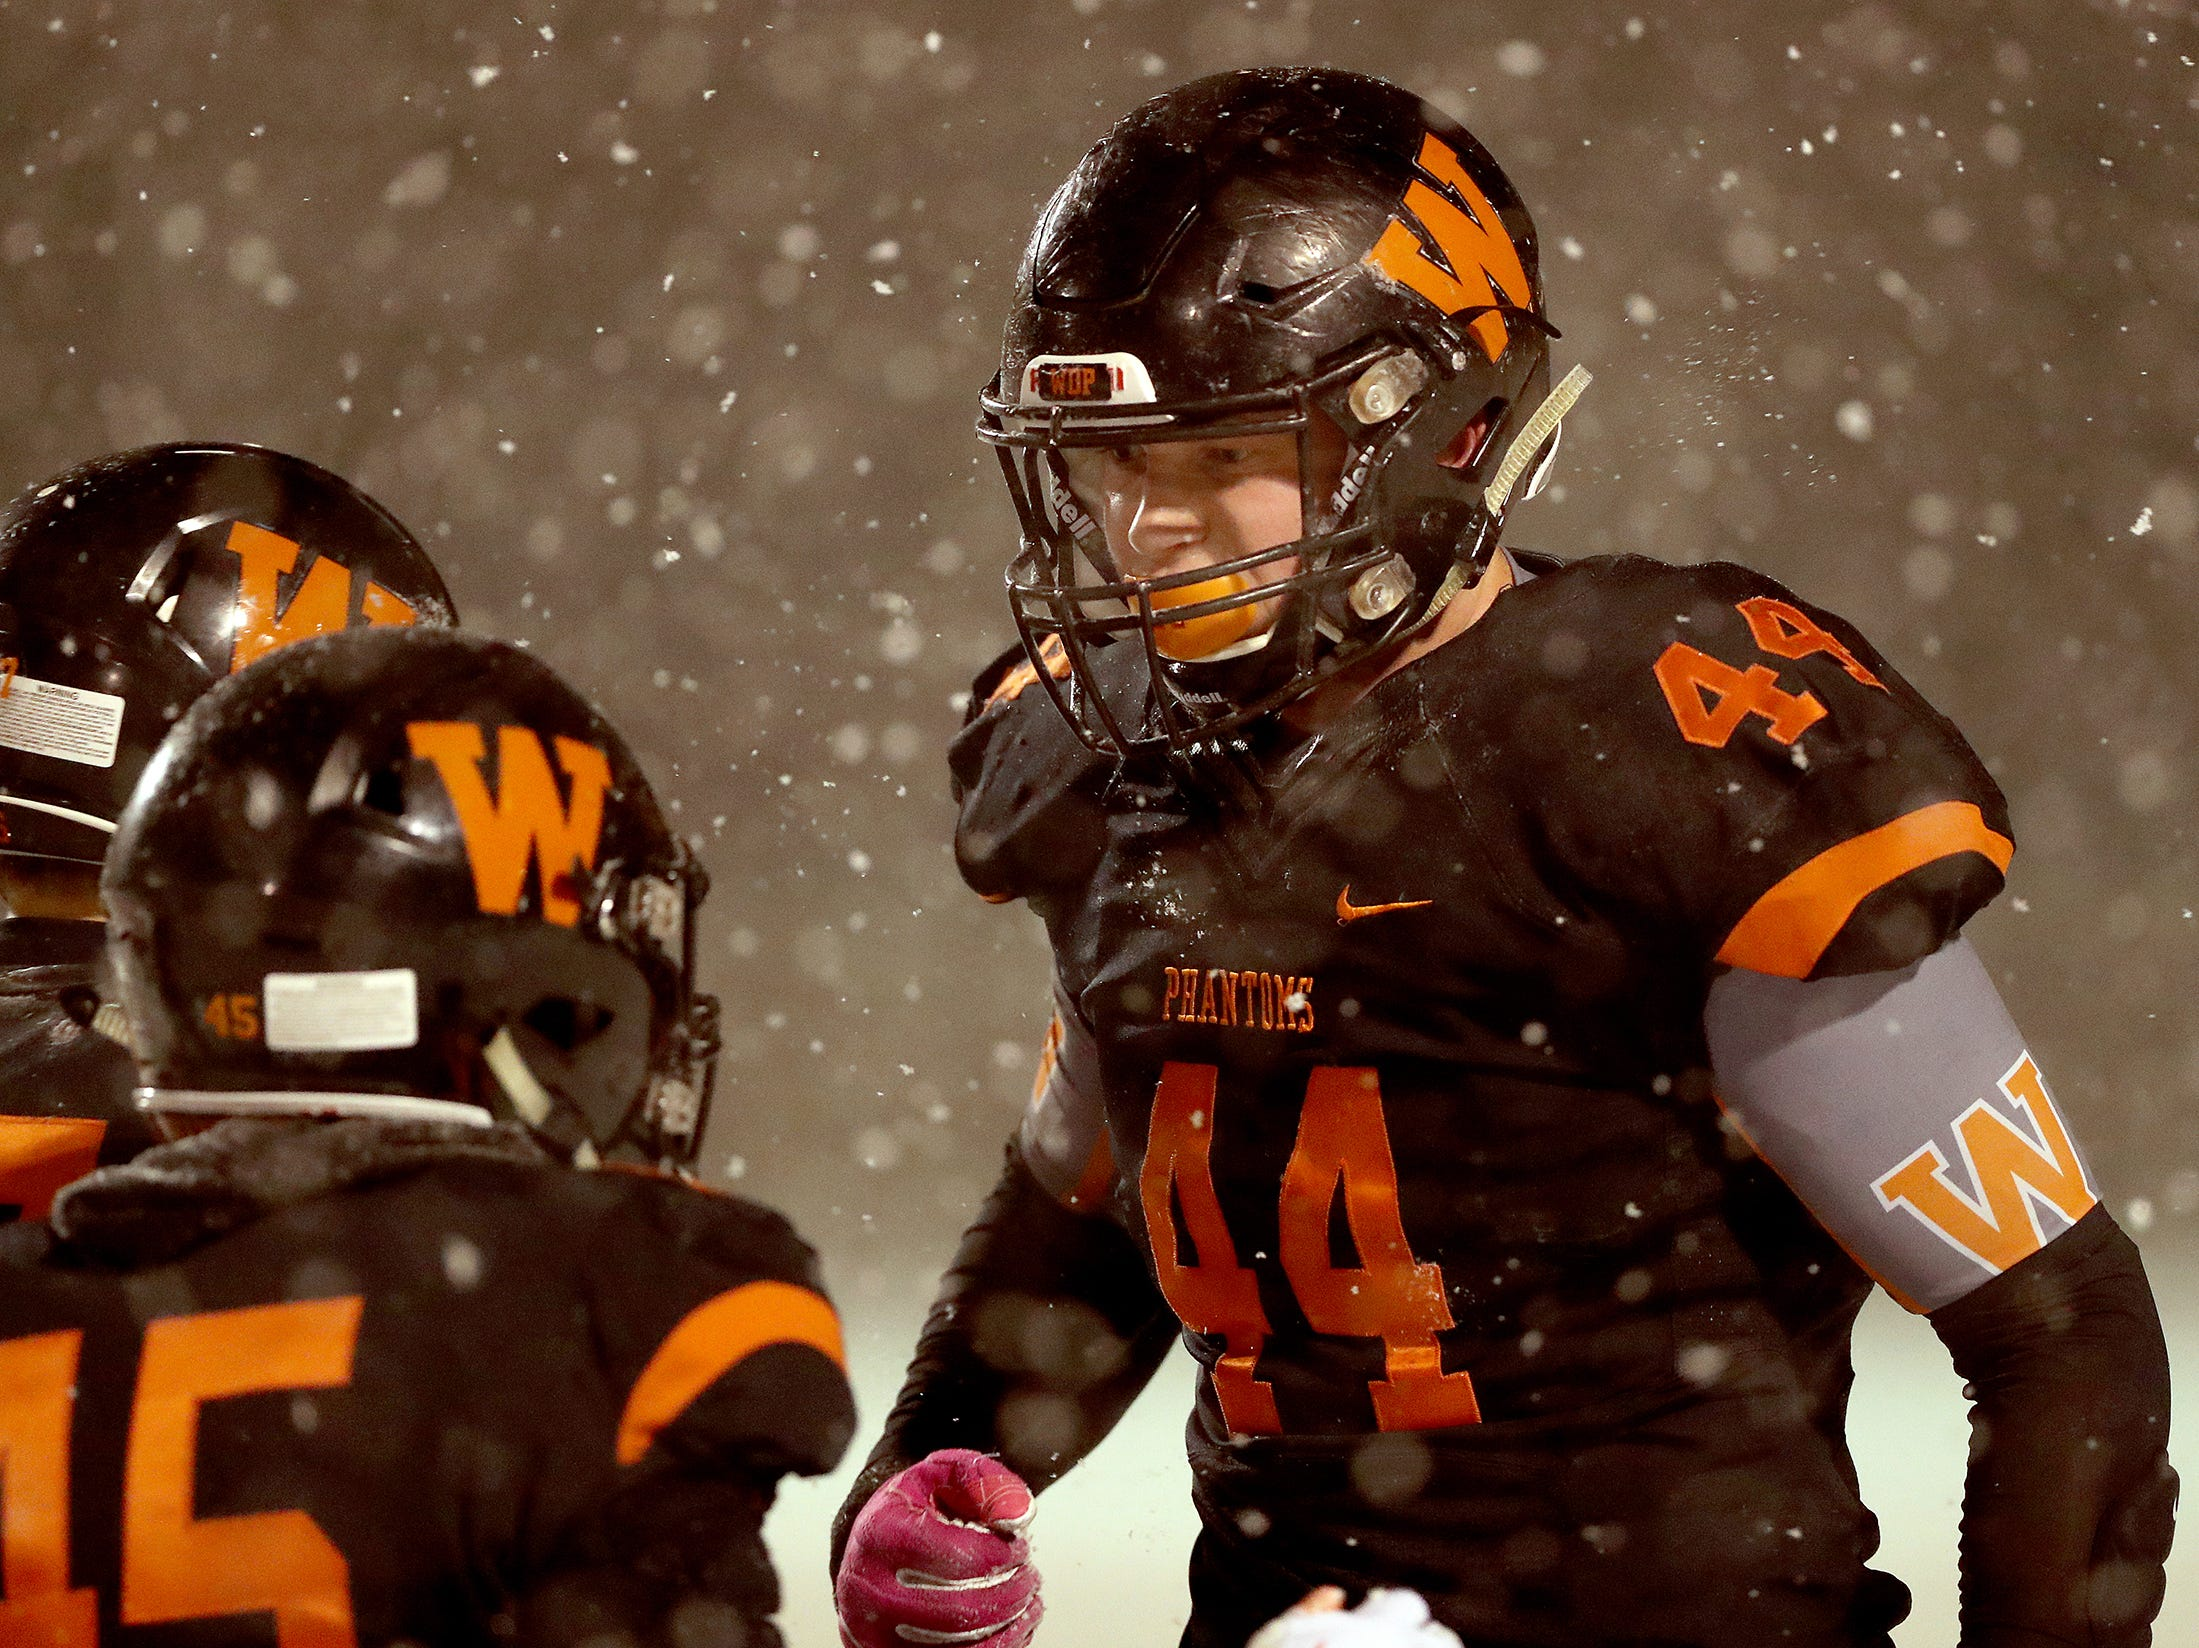 West De Pere's Jake Karchinski is fired up after a defensive stop against Rice Lake in the Division 3 Level 4  WIAA playoffs Friday, November 9, 2018 at DC Everest in Weston, Wis.